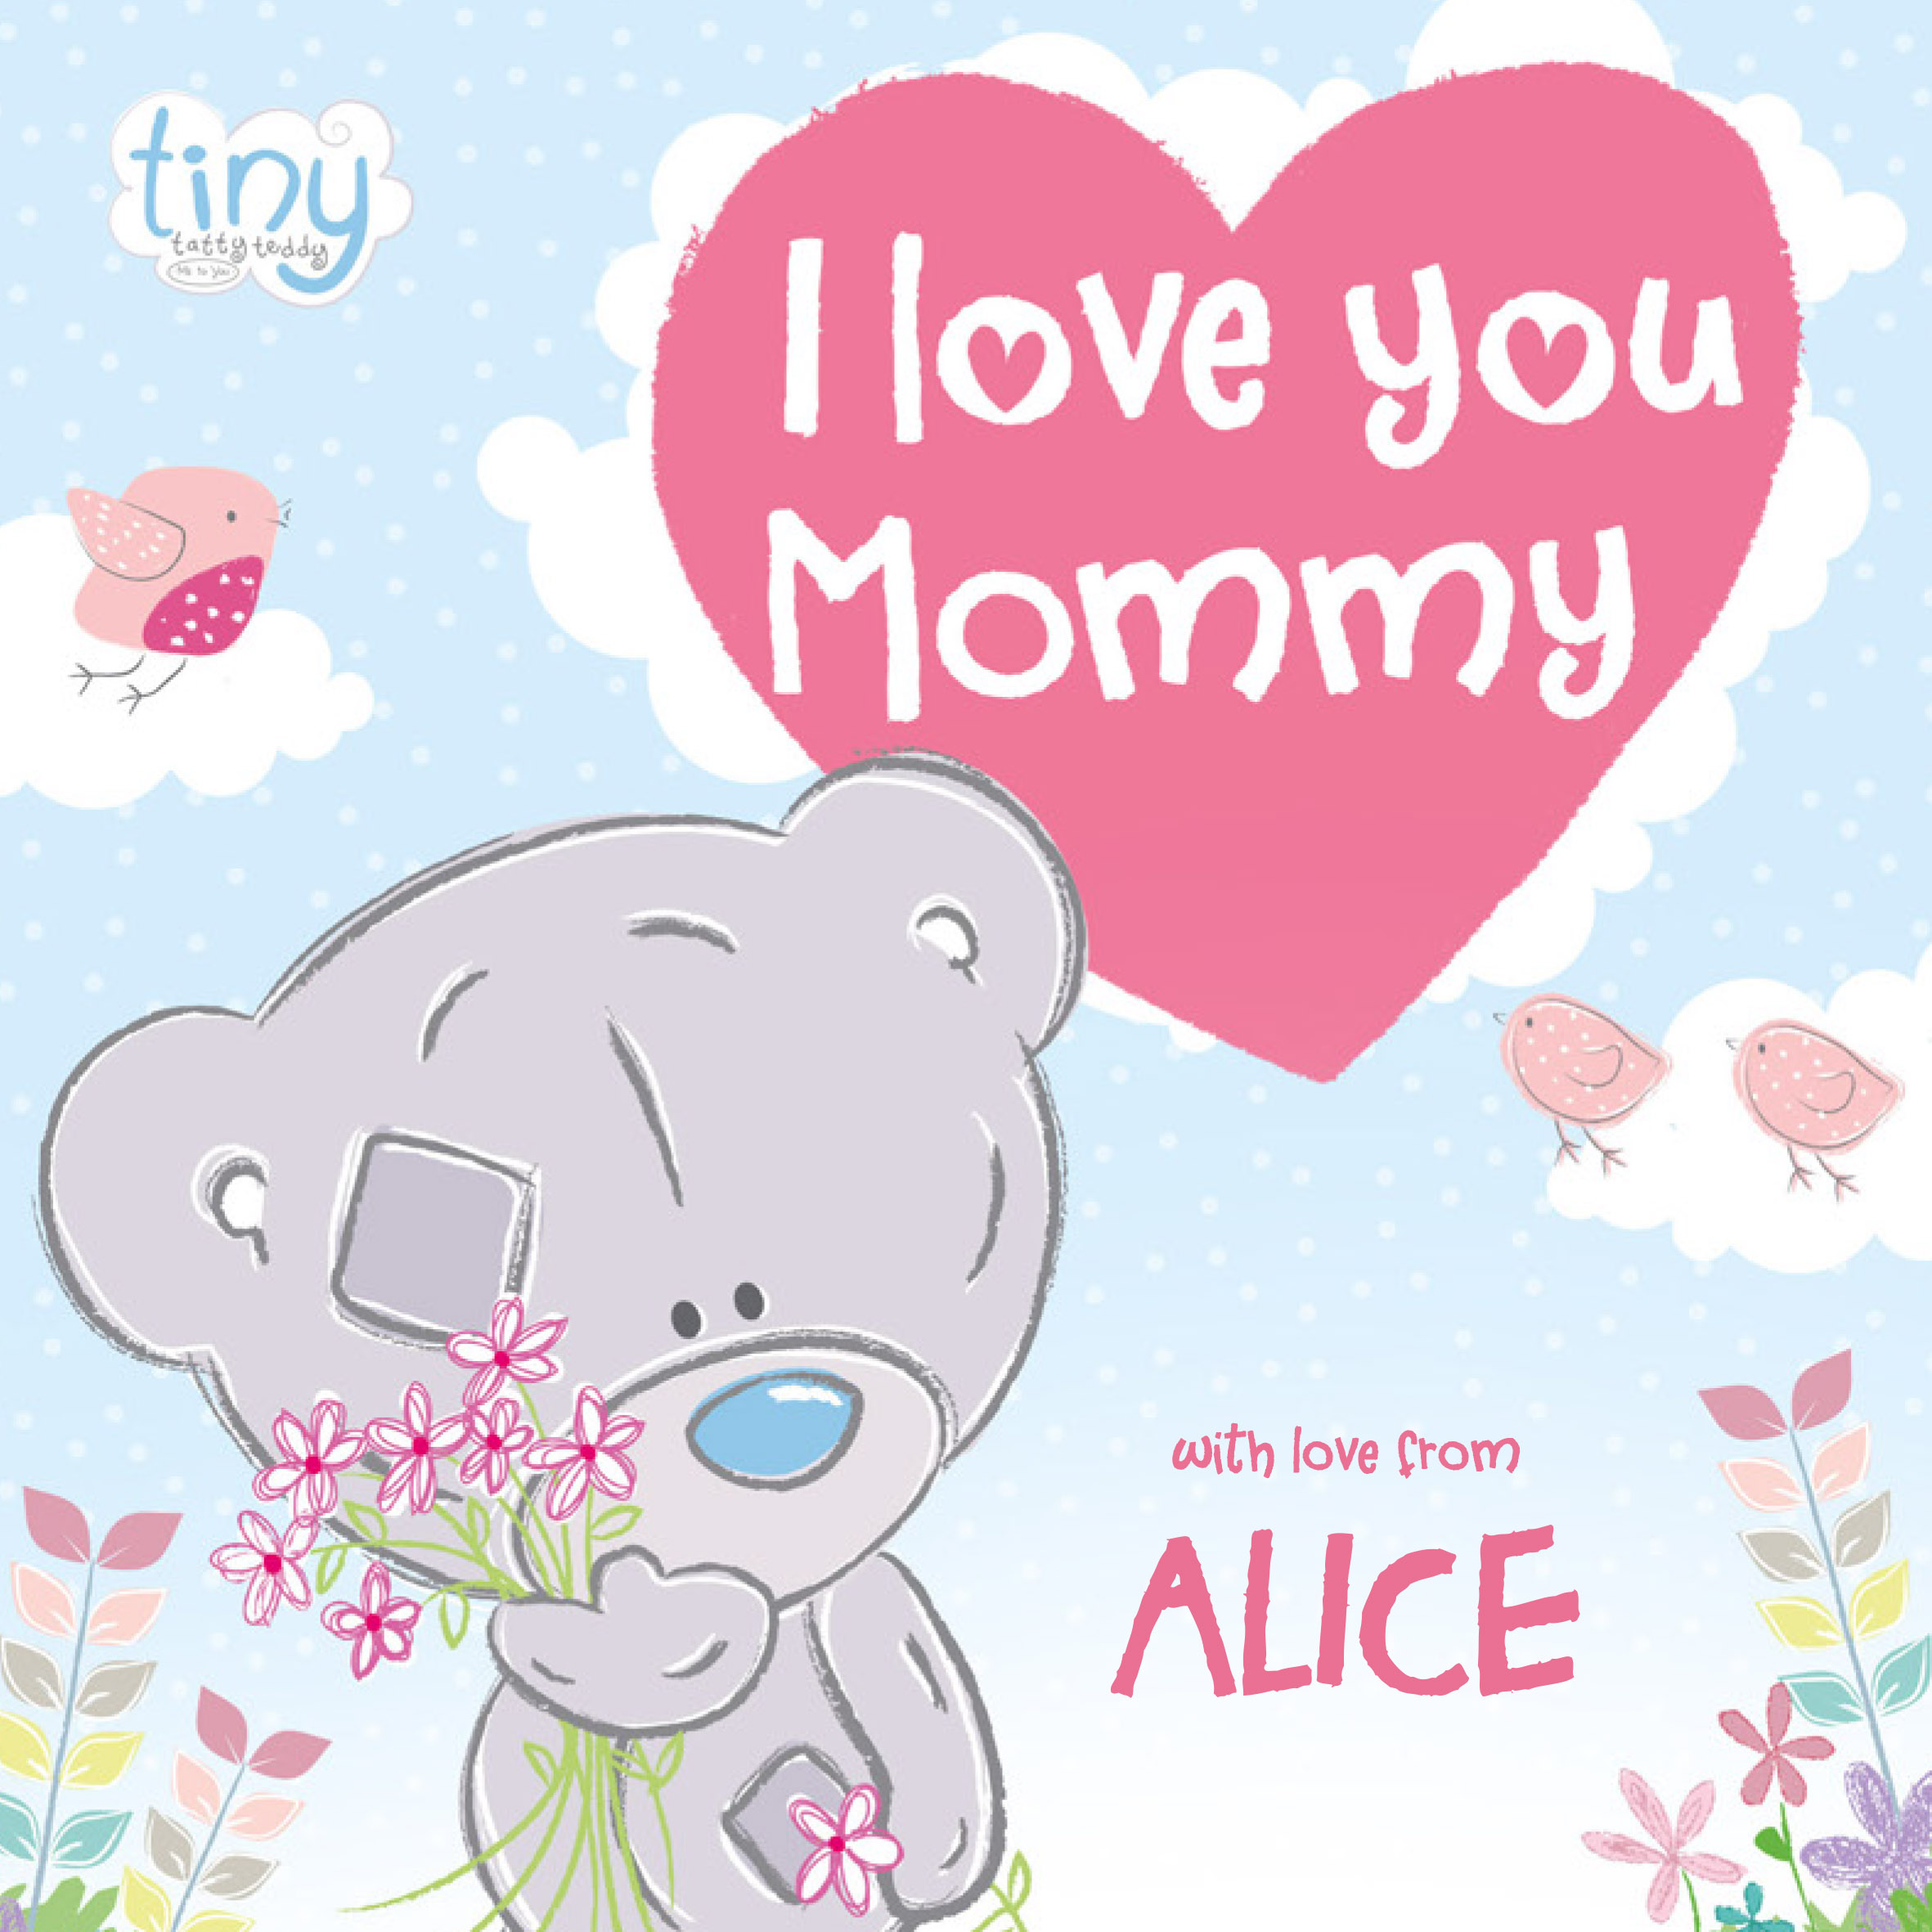 i lover you mommy